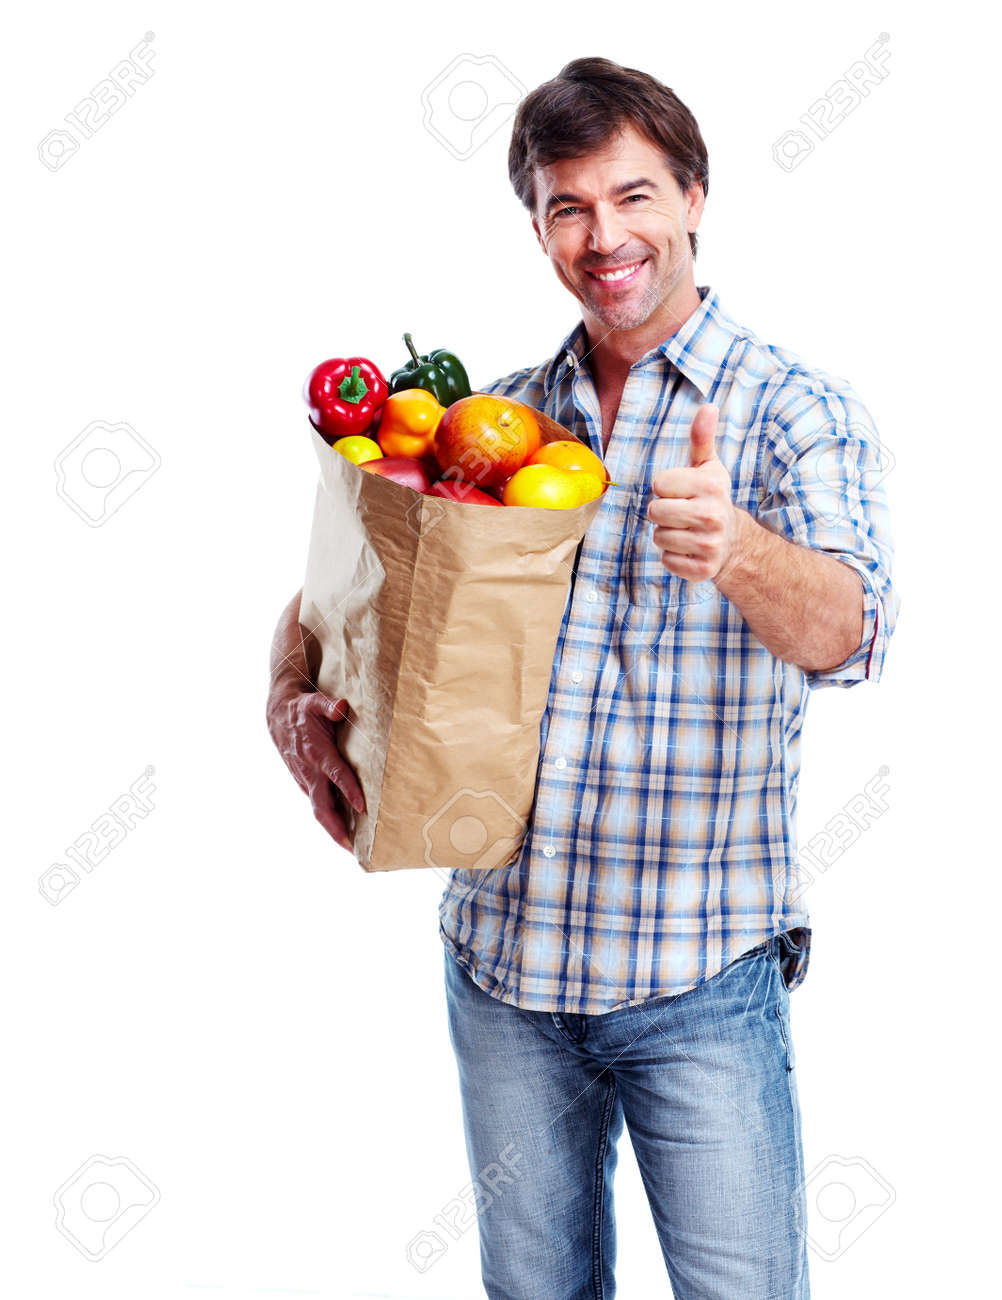 Man with a grocery bag. Stock Photo - 11478377